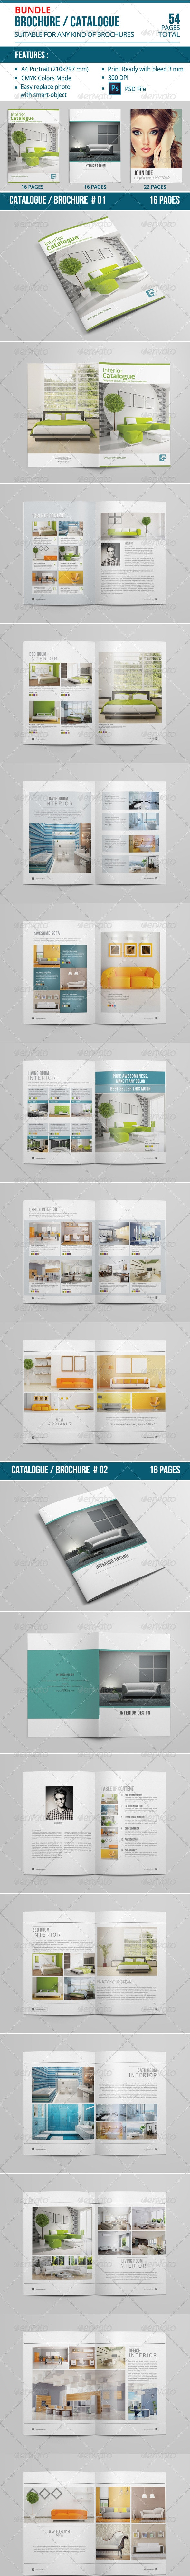 Catalogue / Brochure Bundle Vol. 03 - Catalogs Brochures